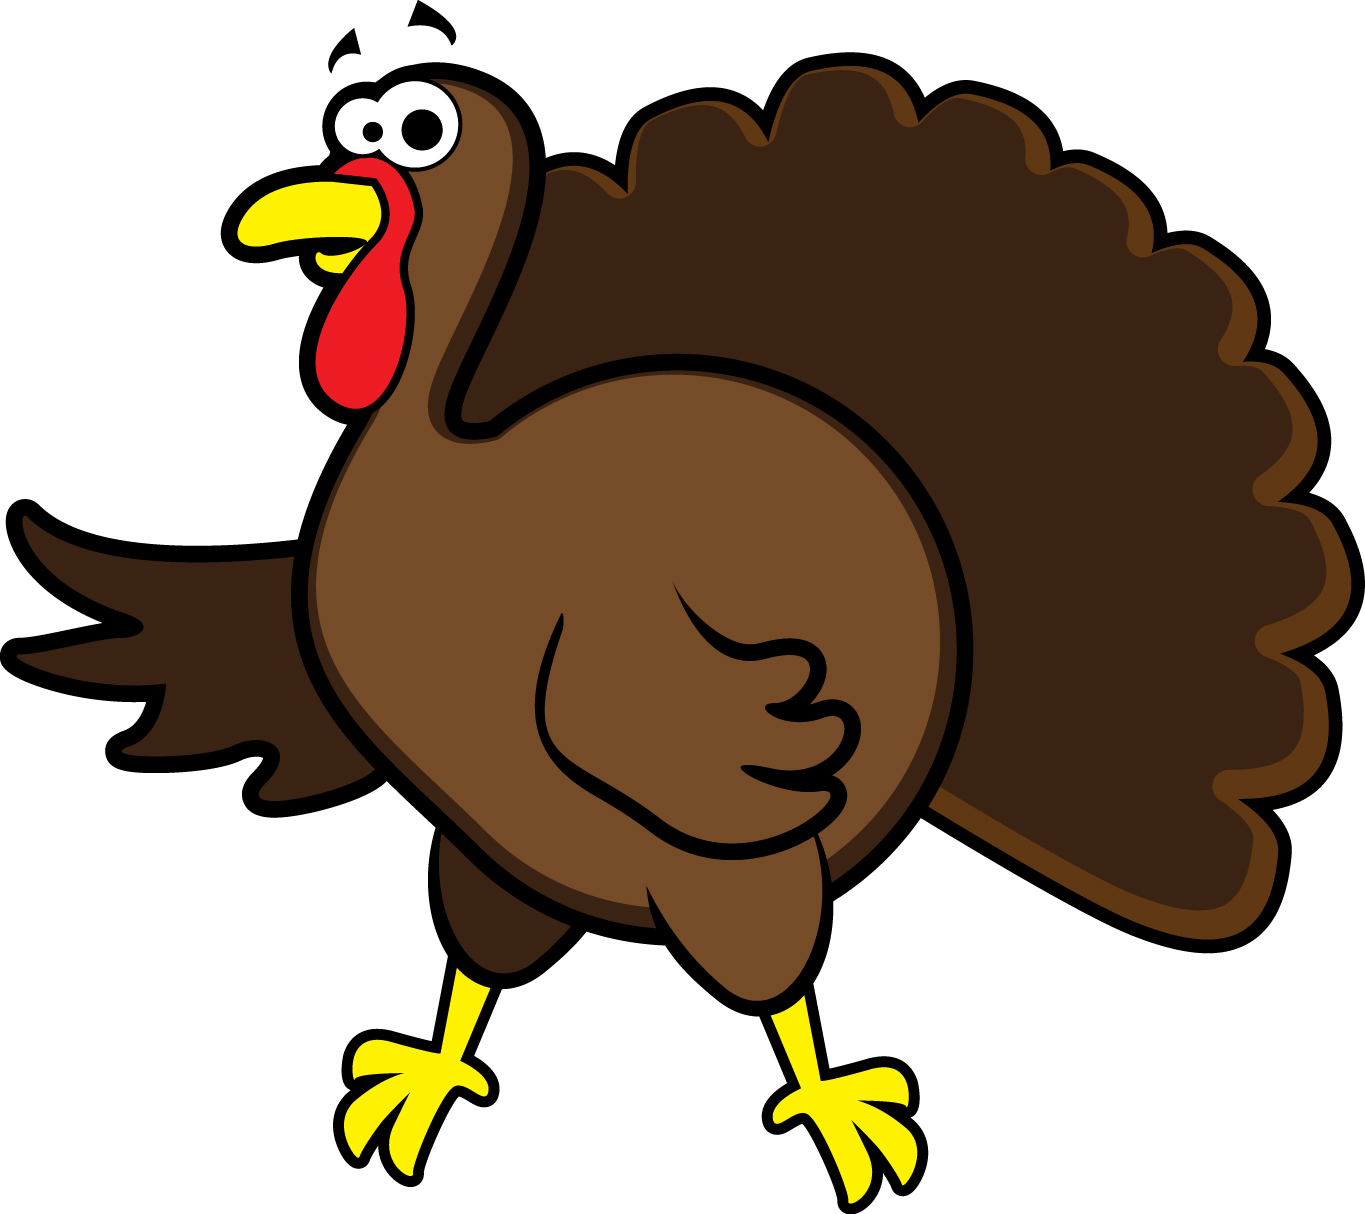 hight resolution of thanksgiving turkey thanksgiving clip art thanksgiving clipart download free 2